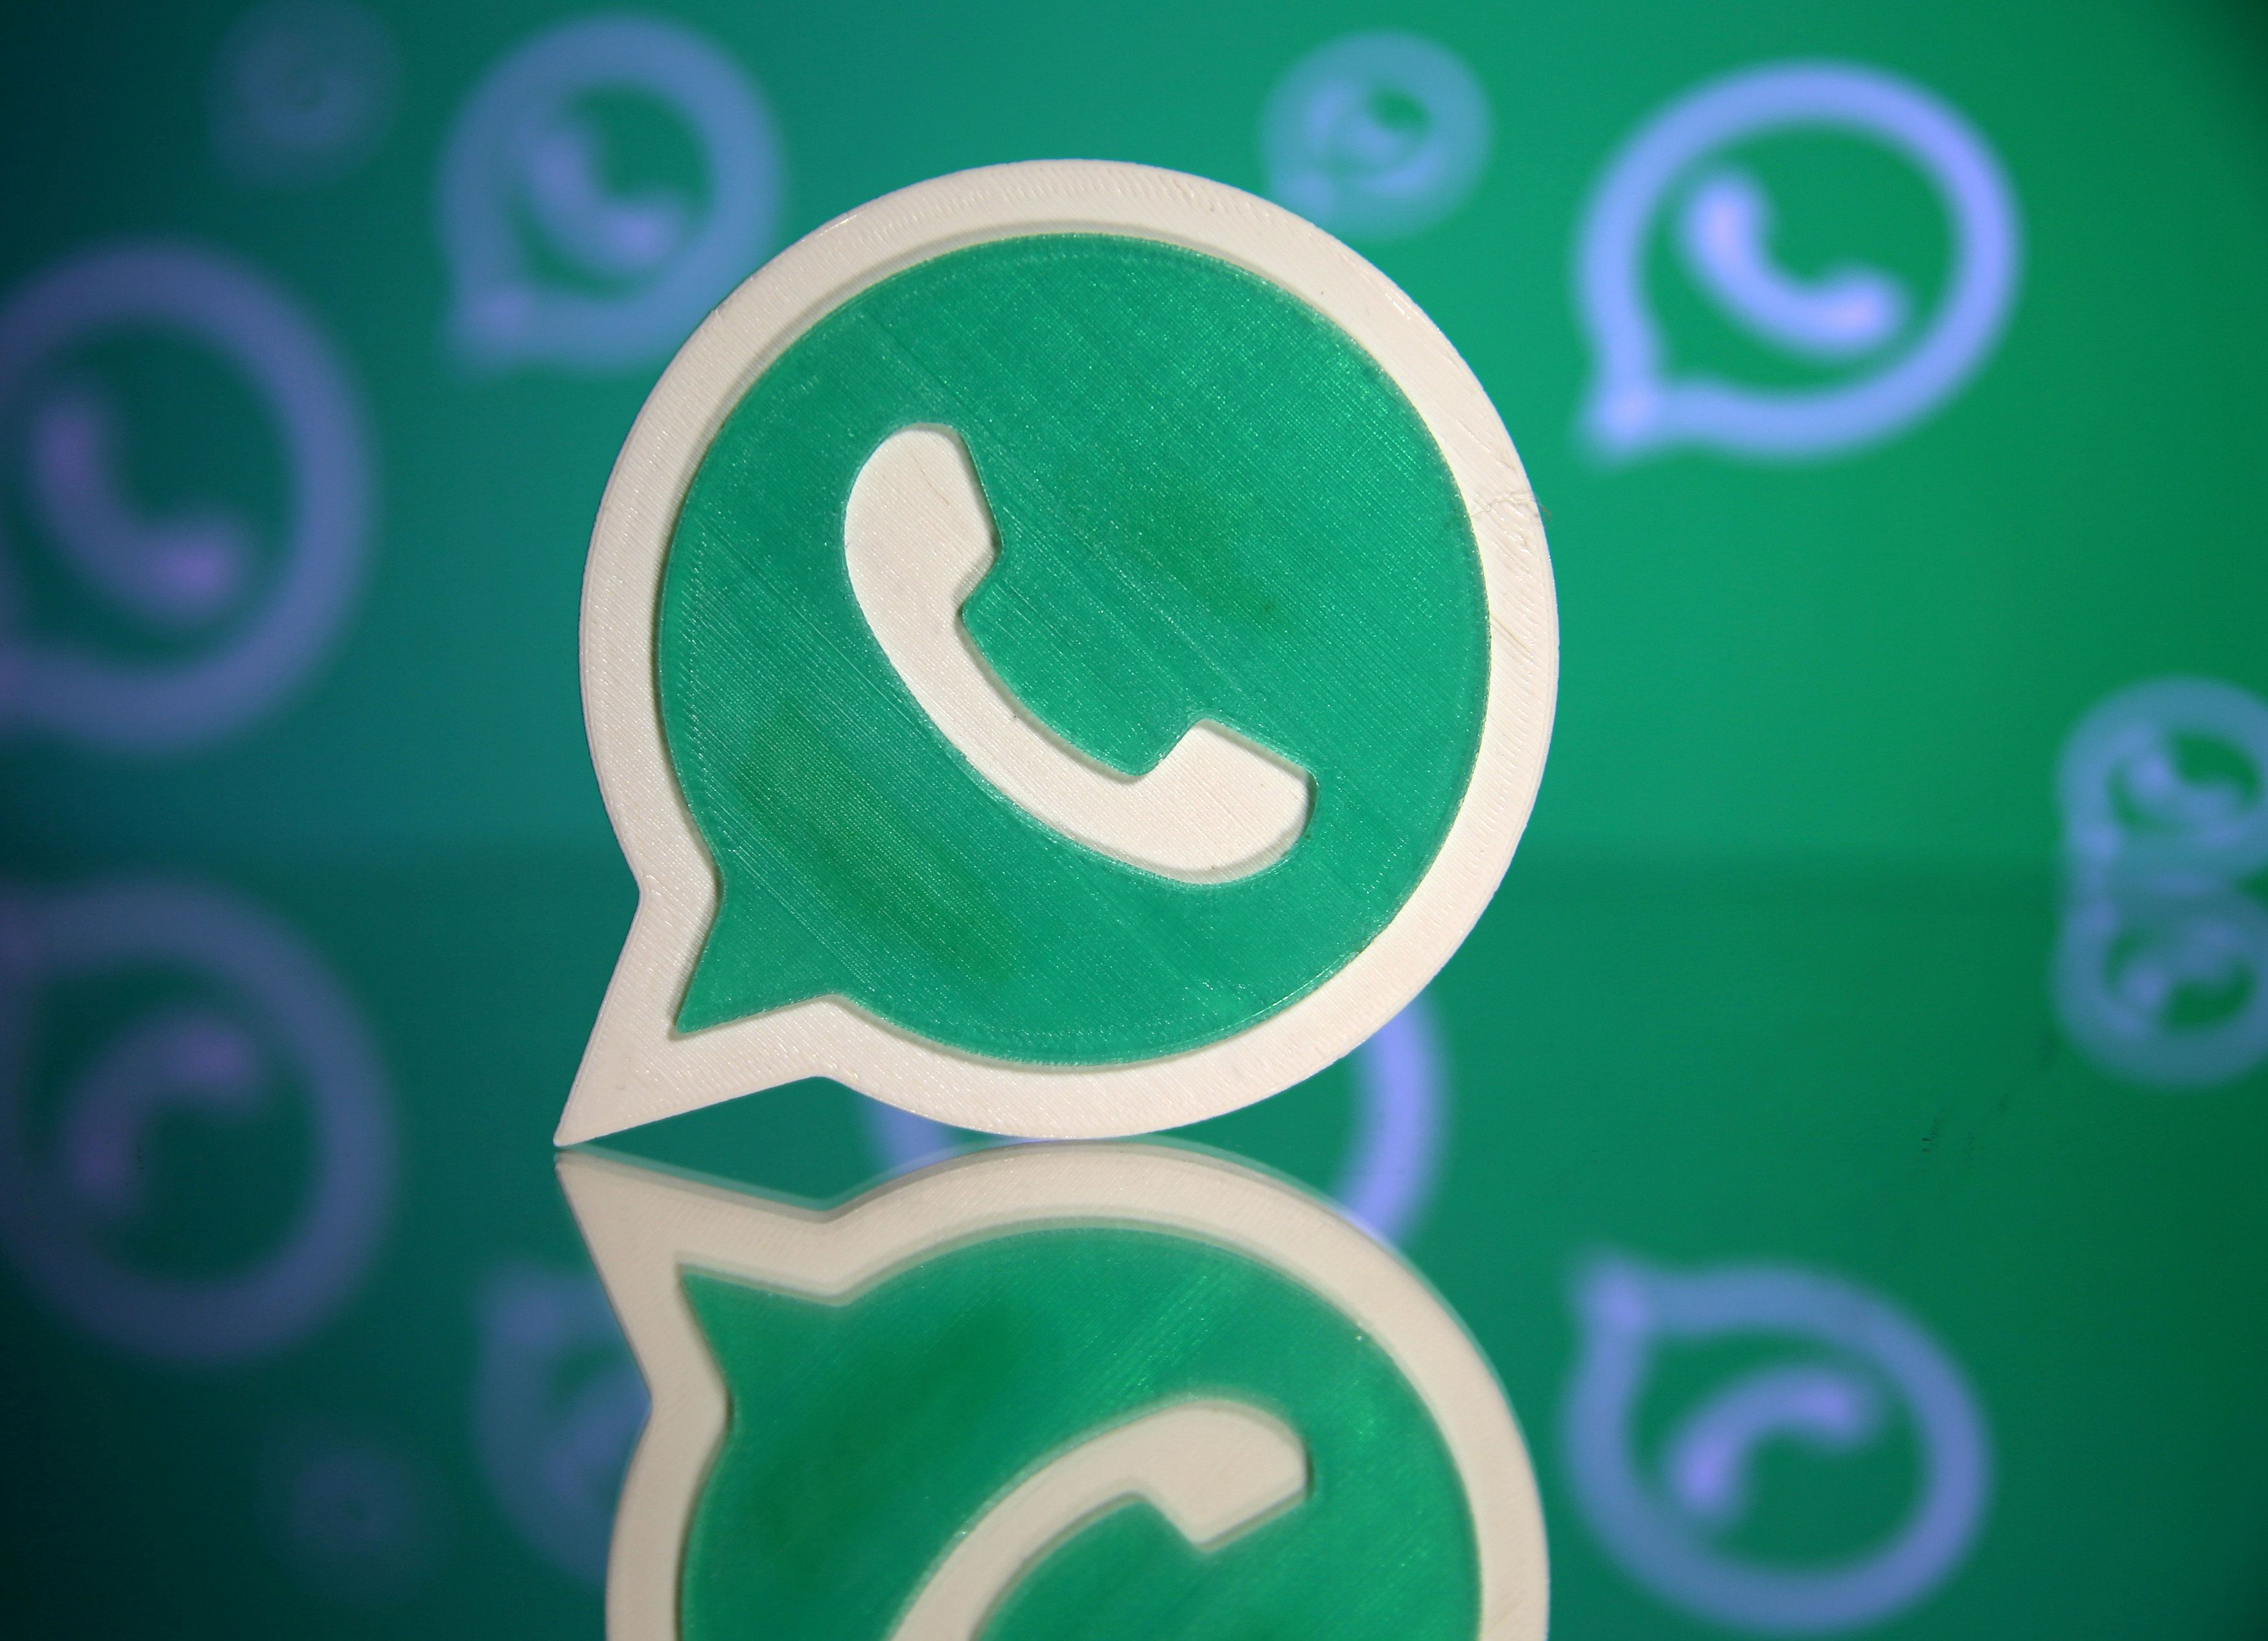 WhatsApp, security and spyware: what happened | The Star Online